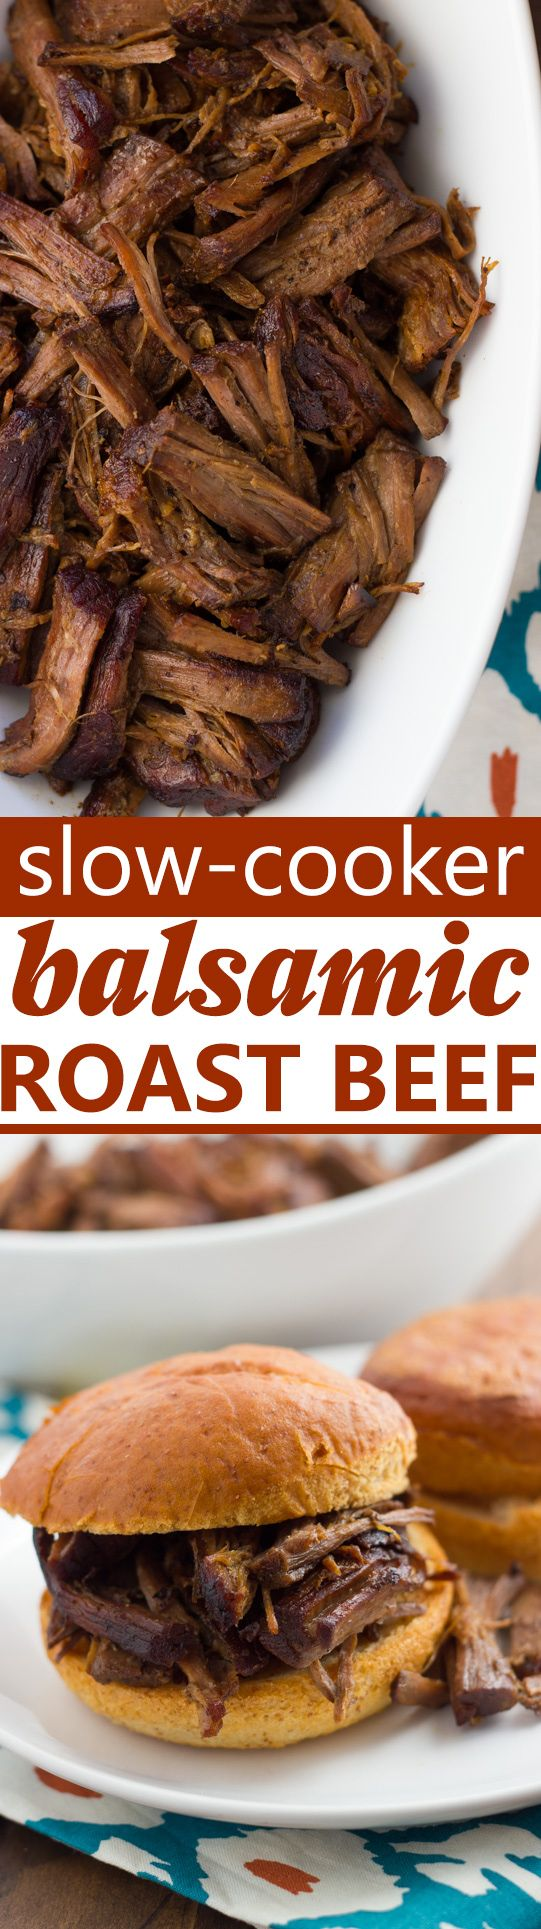 Slow-Cooker Balsamic Roast Beef! Amazingly tender, savory roast beef easily made in the slow-cooker with just 10 min prep. Delicious as pot roast or as a French-dip type sandwich! (Gluten-Free)